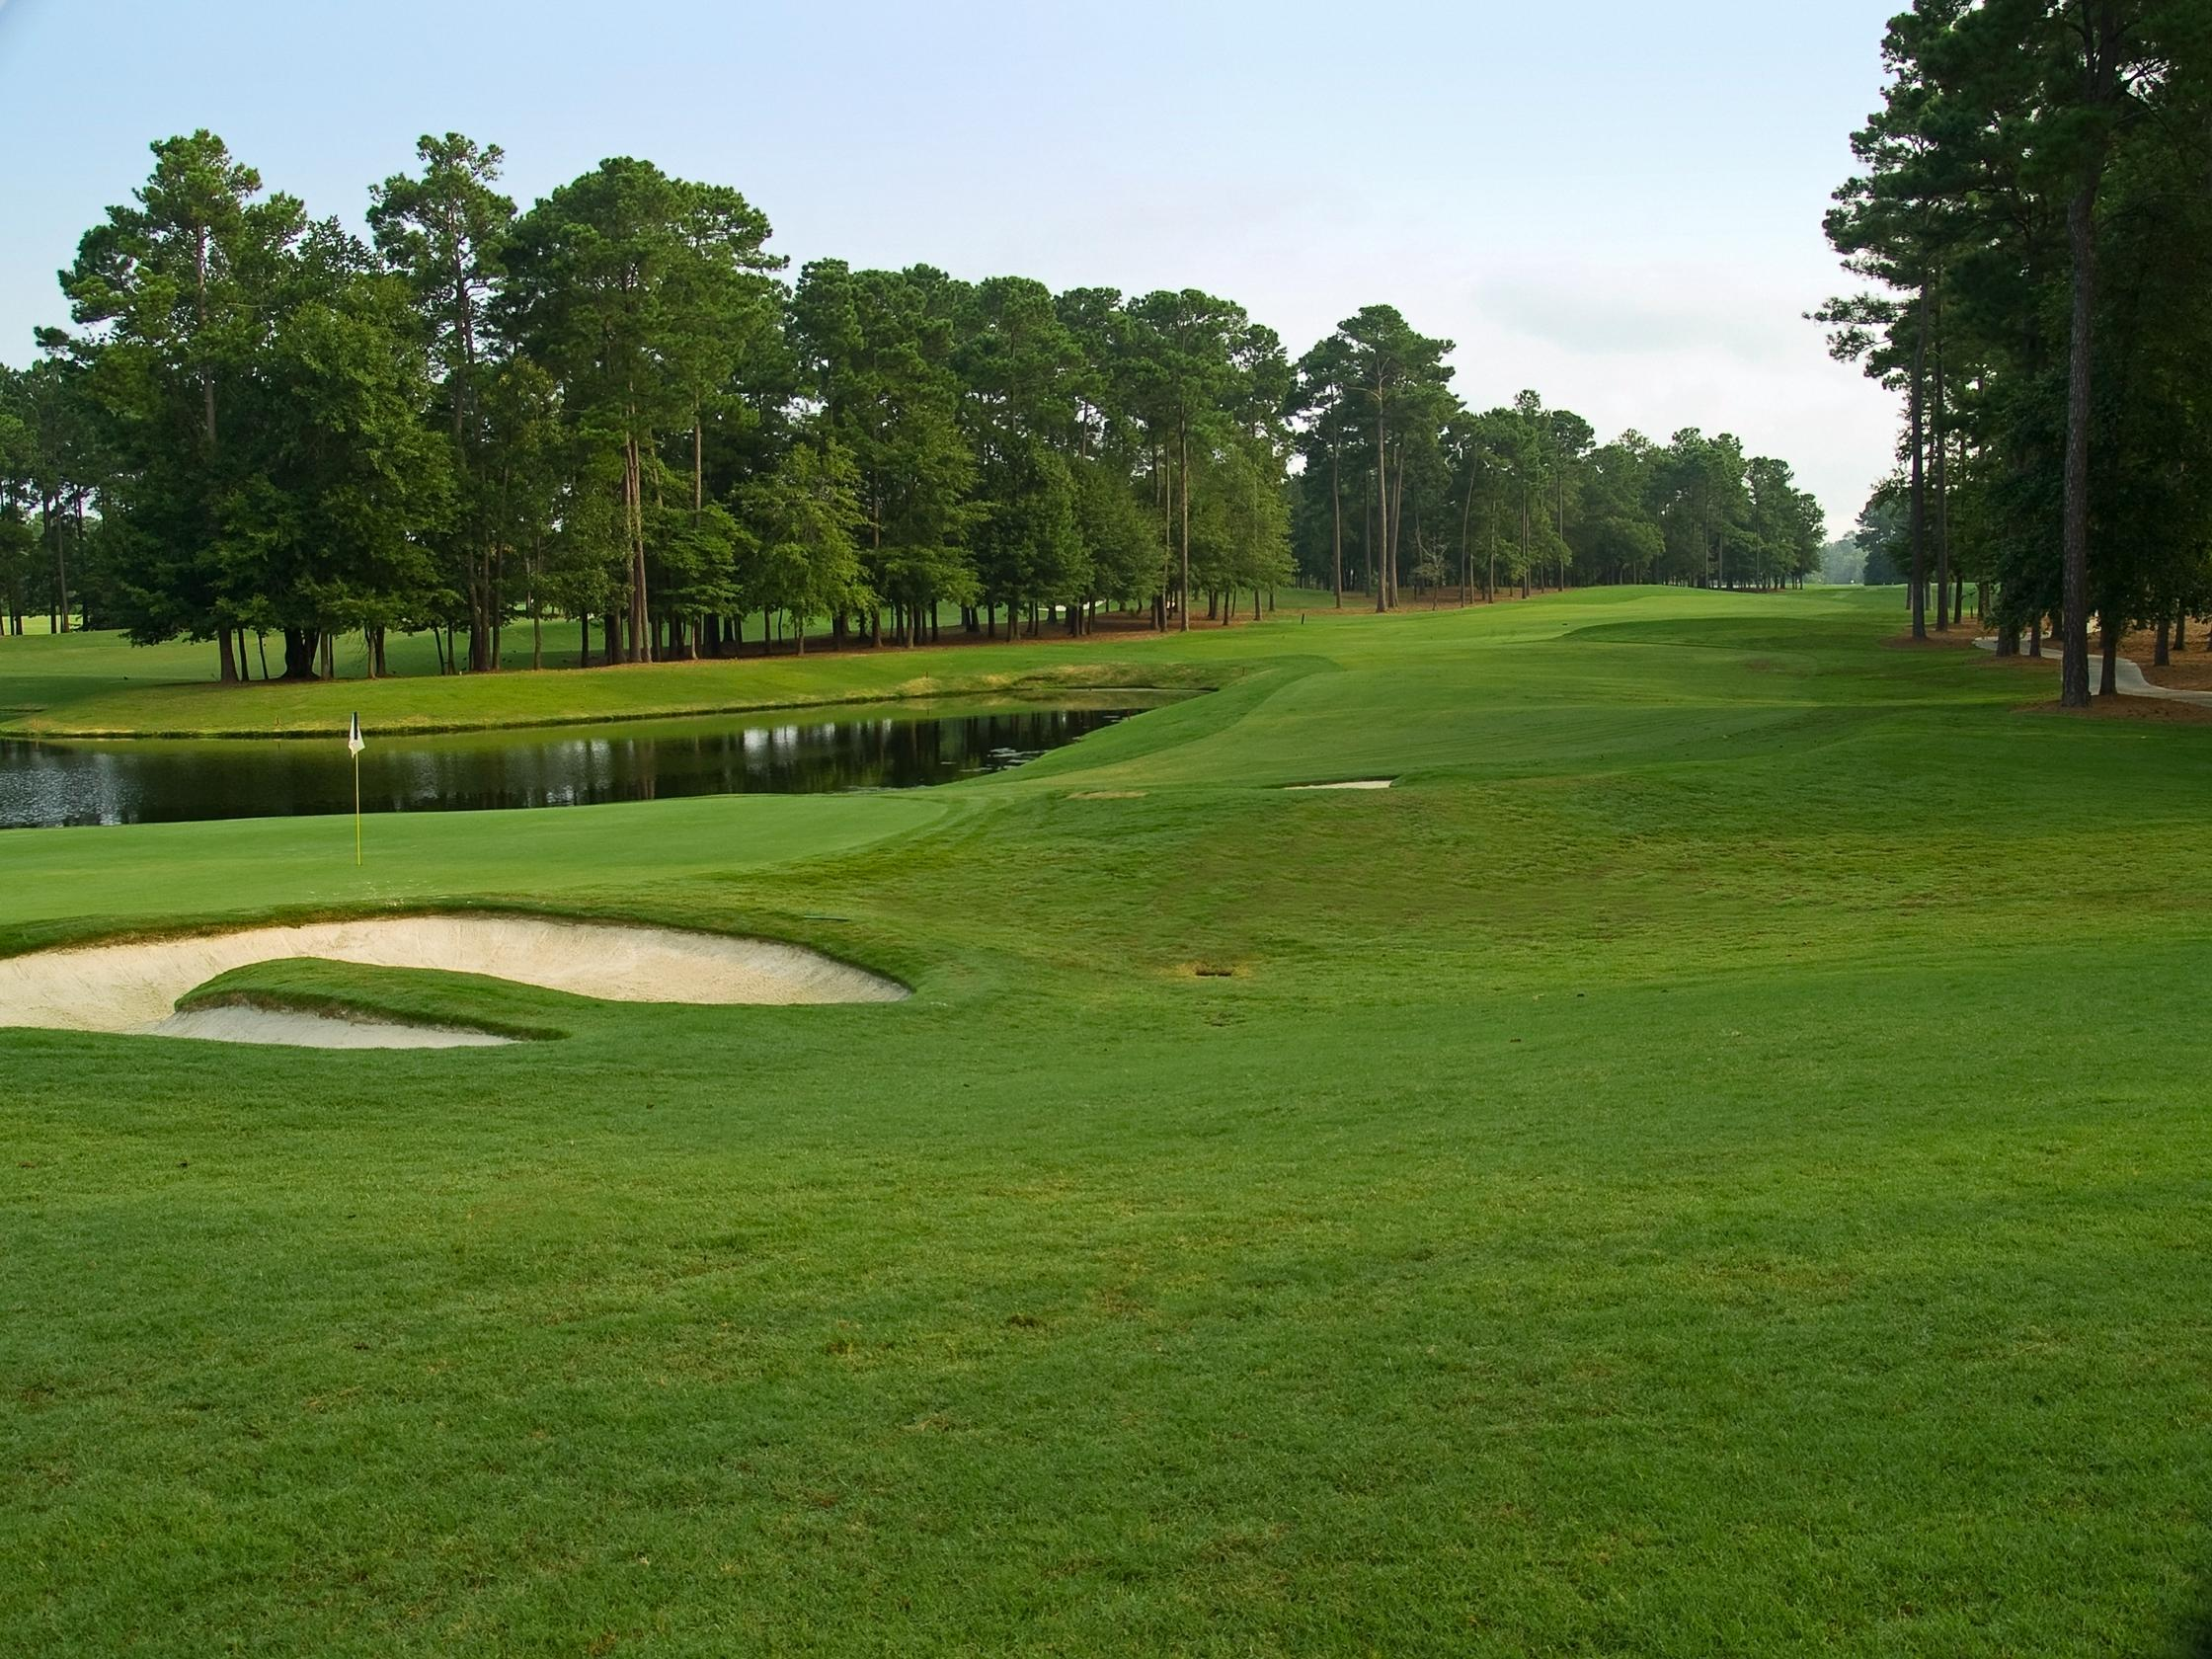 Golf enthusiasts can perfect their swing at several nearby courses.